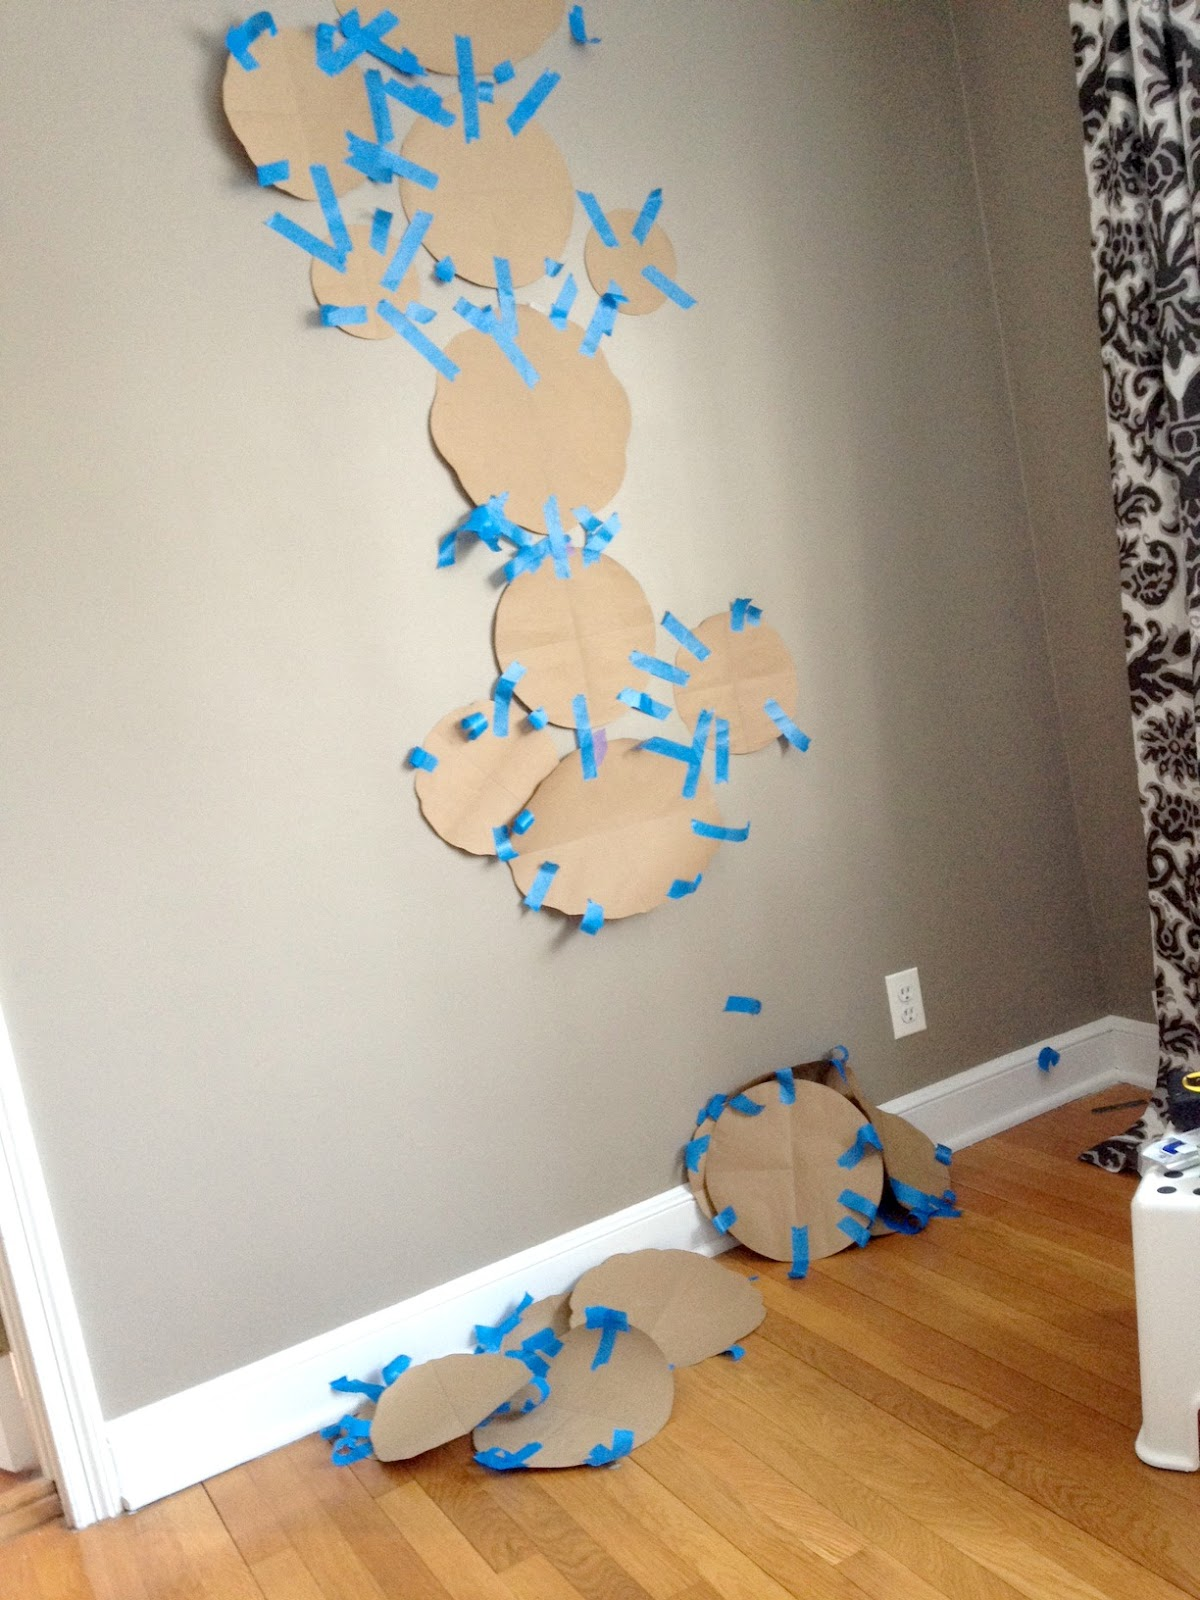 Step 3: Tape Your Templates To The Wall